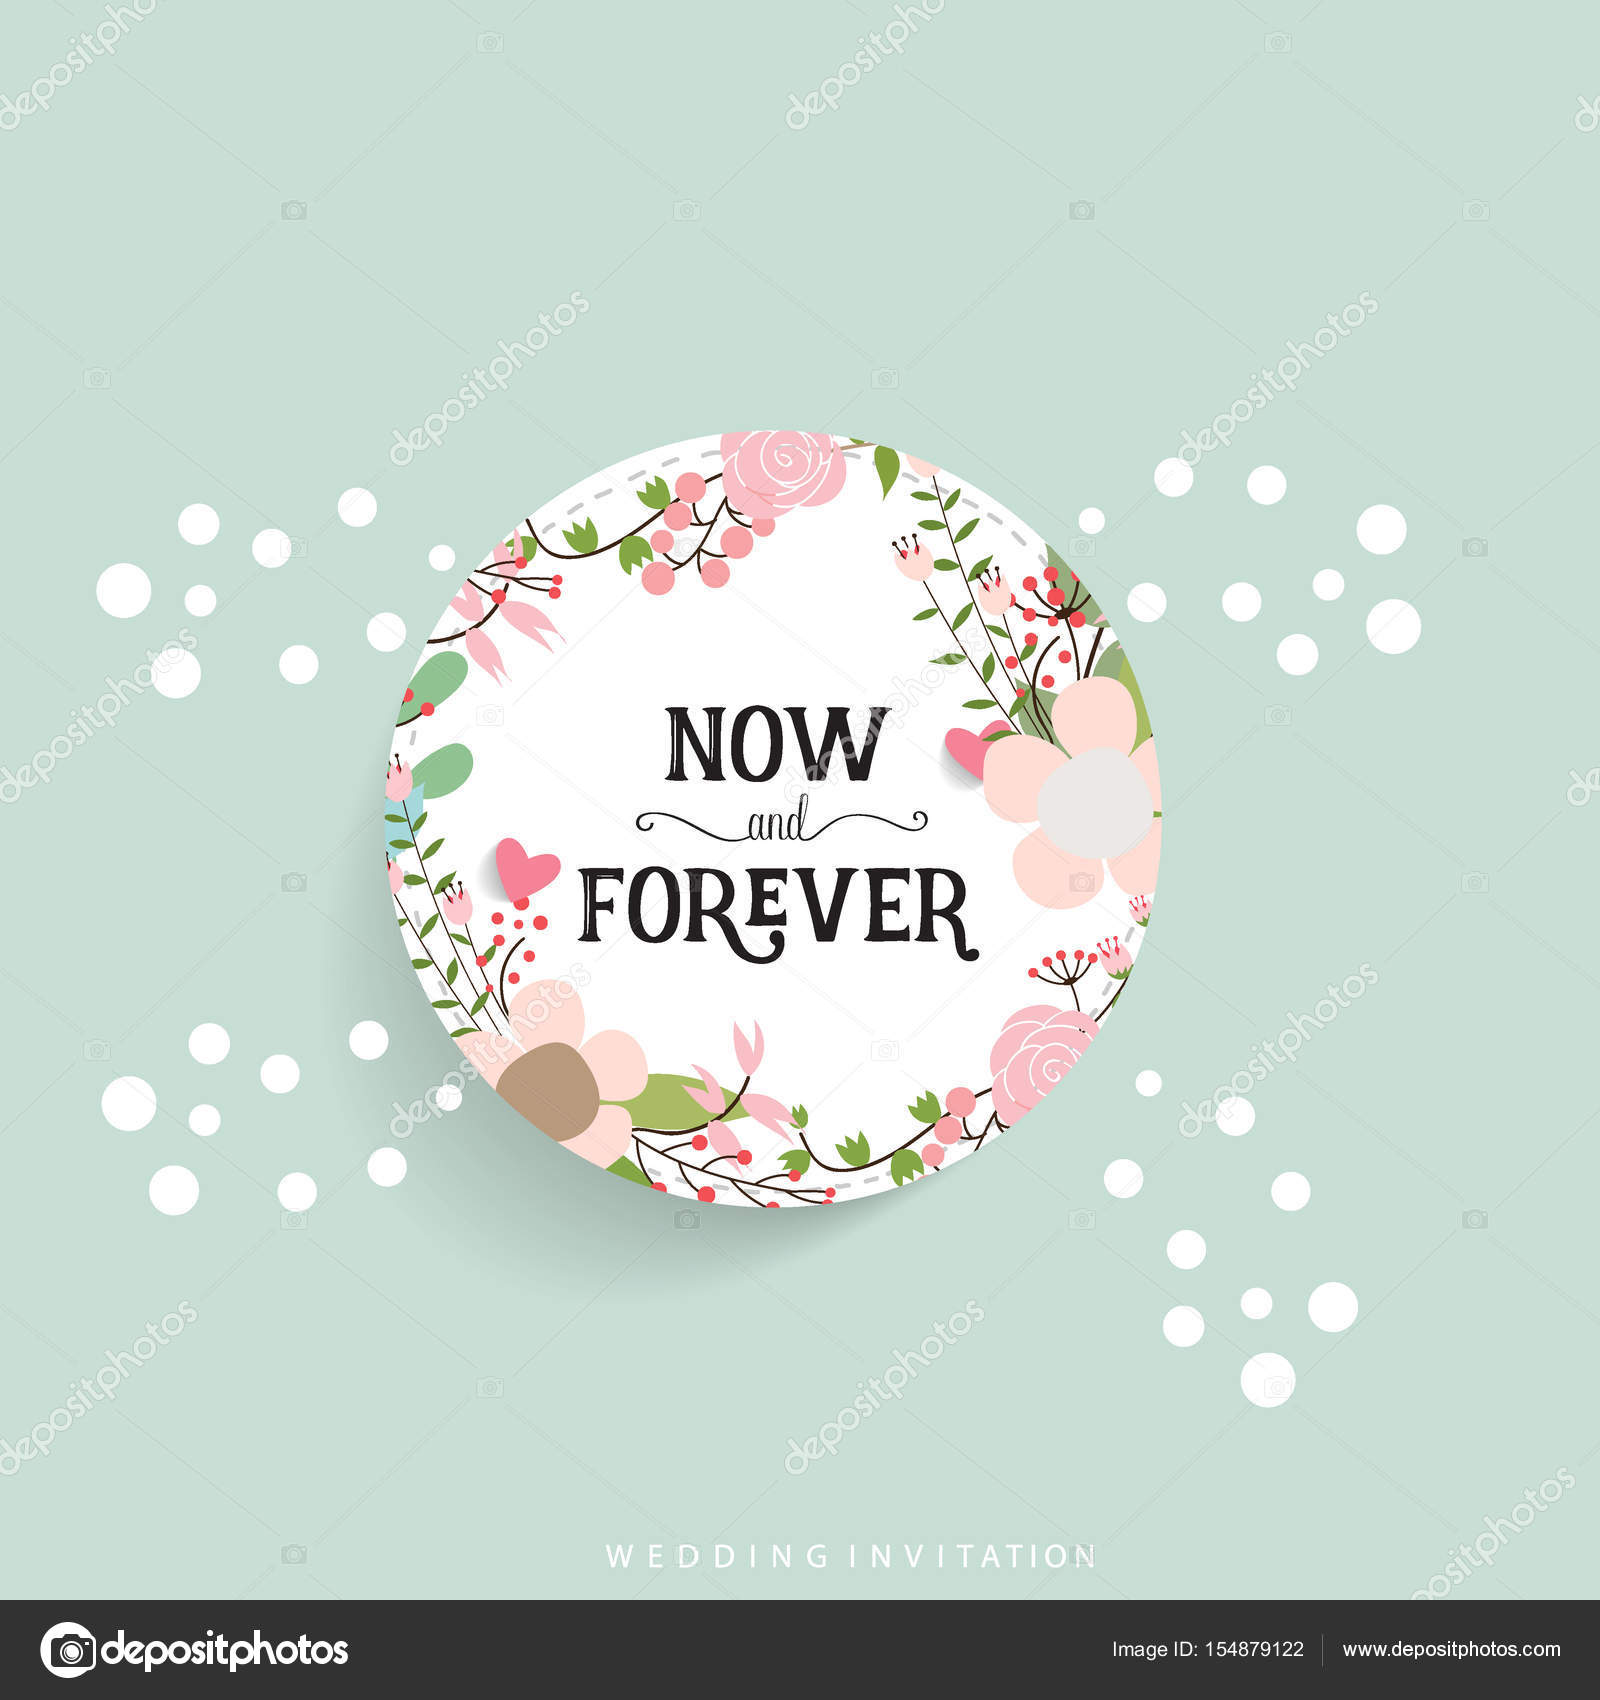 Wedding invitation card design with cute flower templates vecto wedding invitation card design with cute flower templates vecto stock vector stopboris Images